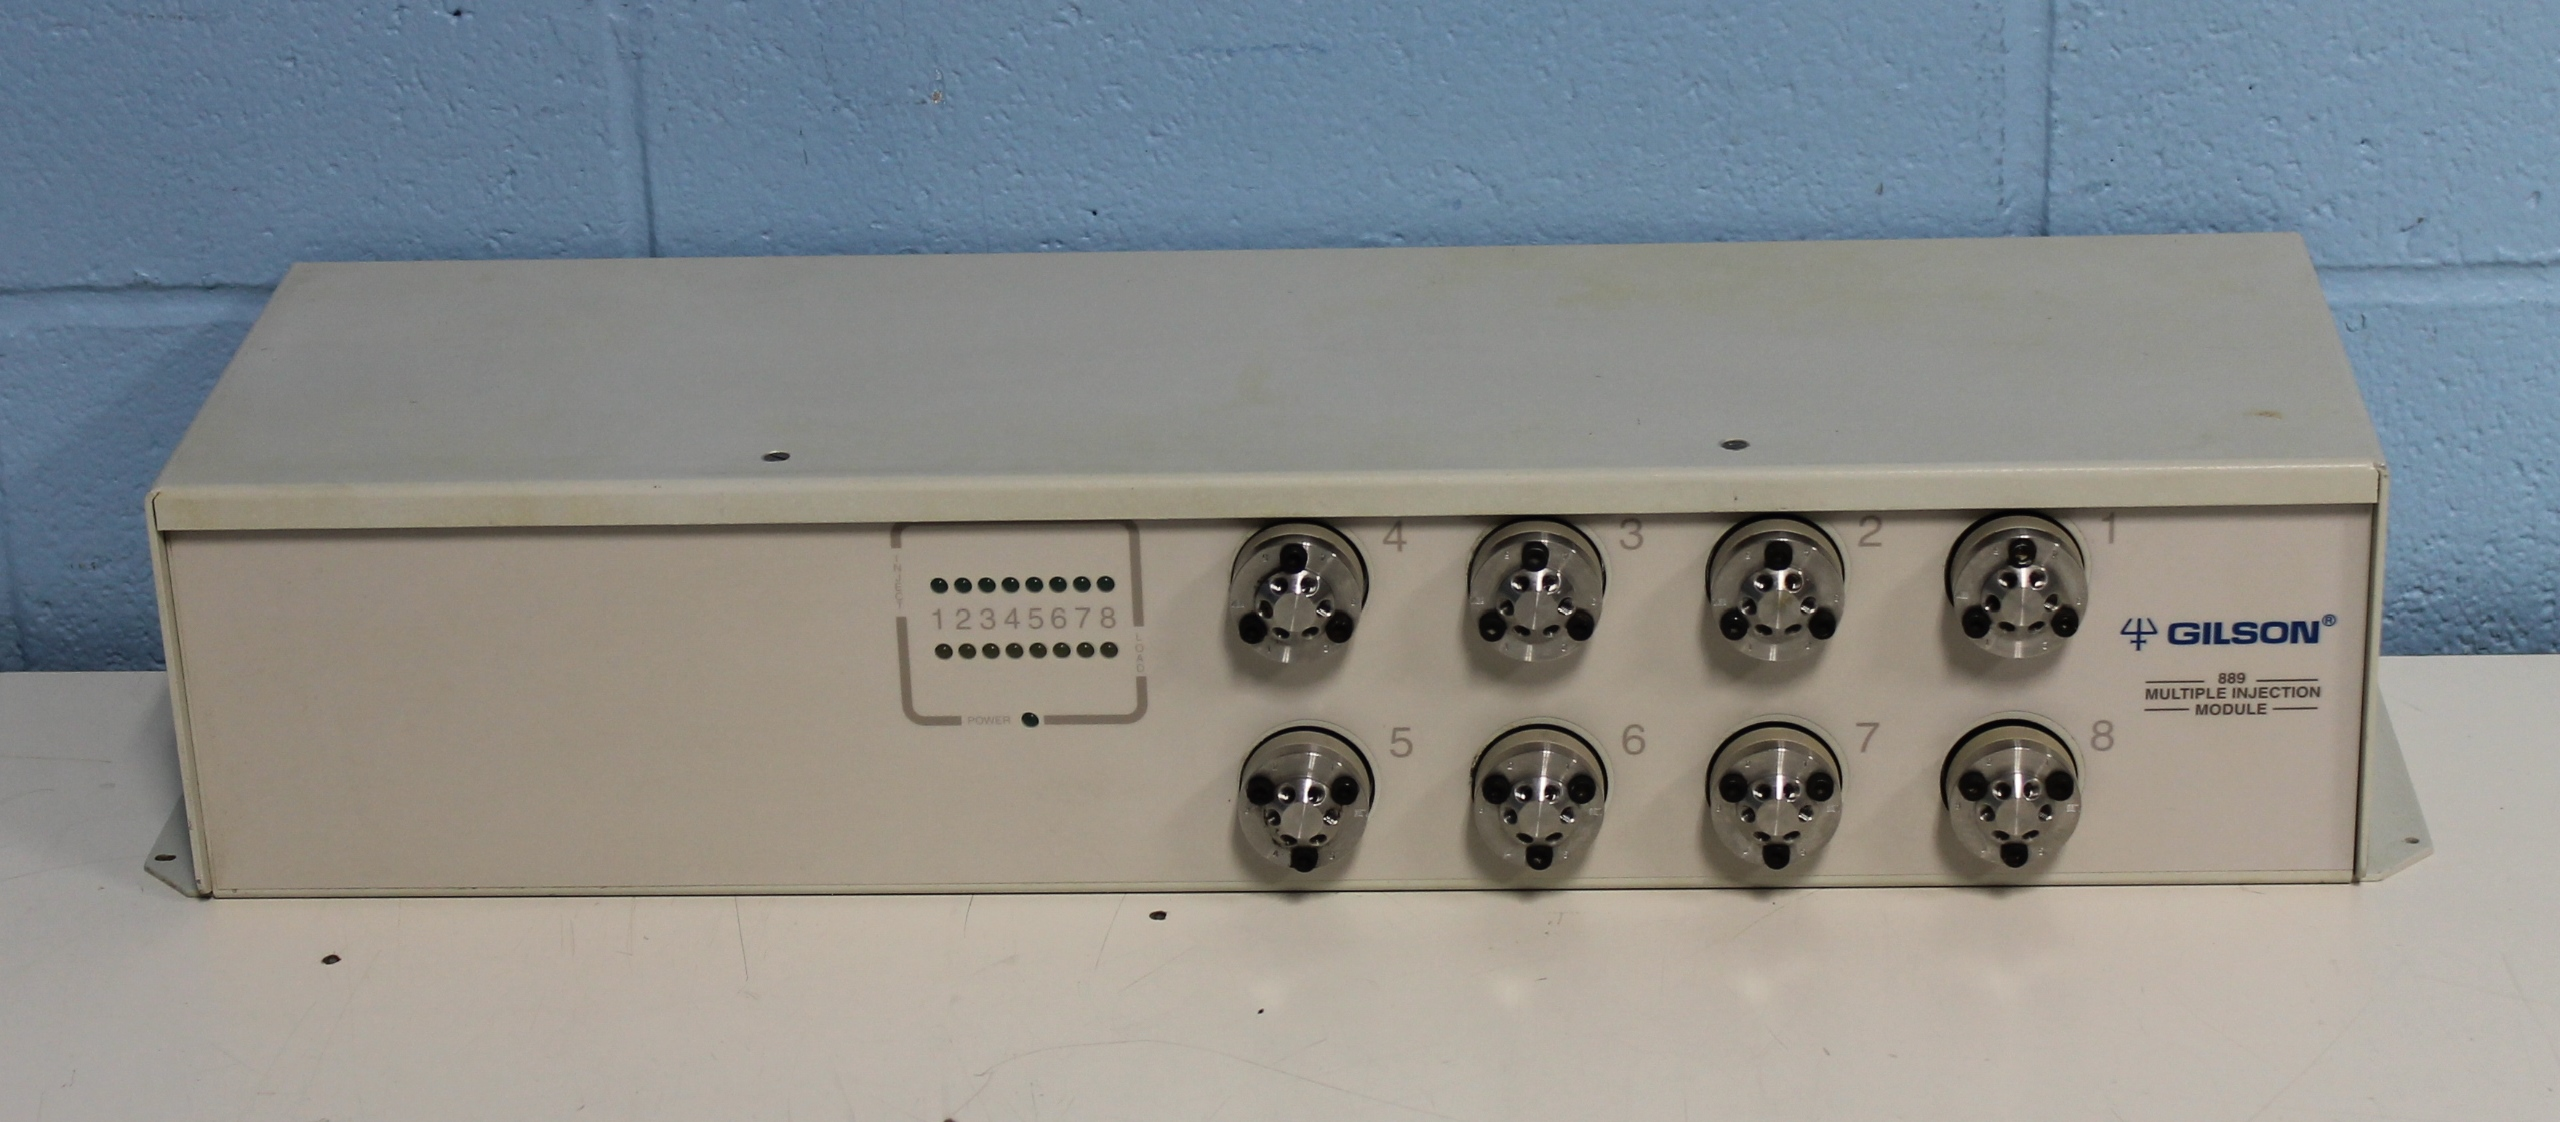 Gilson Multiple Injection Module Mod 889 with Gilson 506C System Interface Module Image